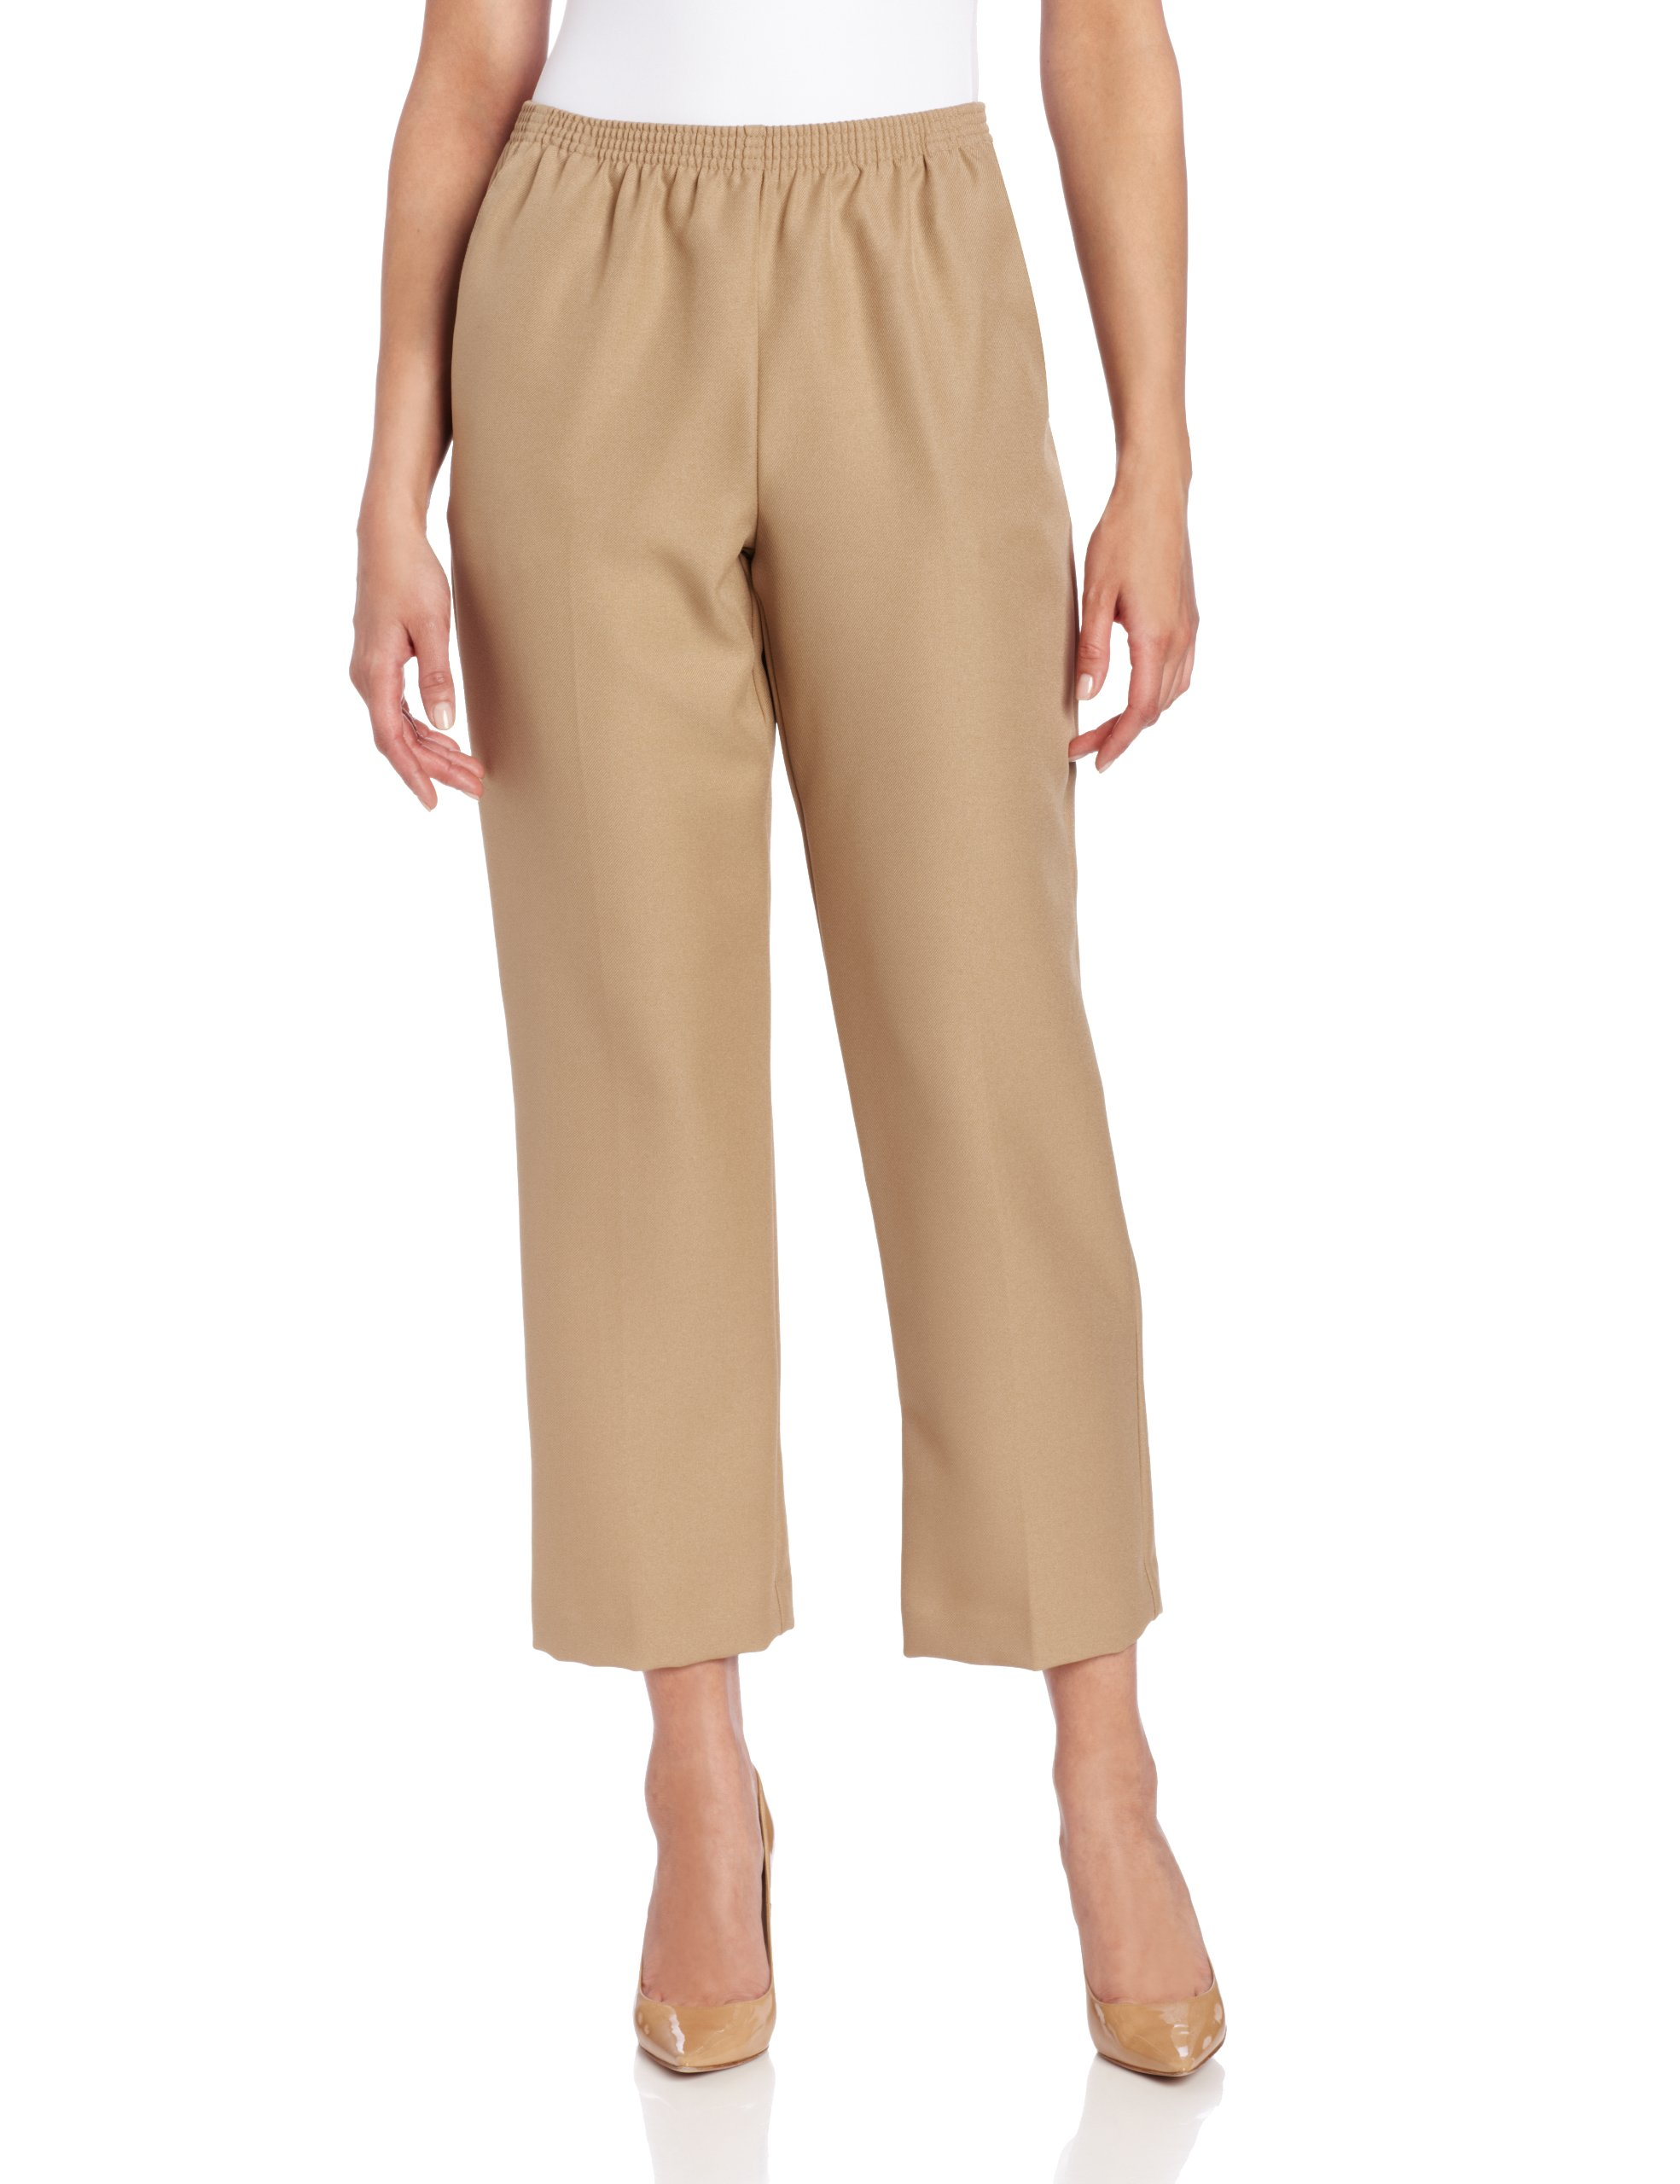 Alfred Dunner Women's Short Pant,Tan,18 by Alfred Dunner (Image #1)